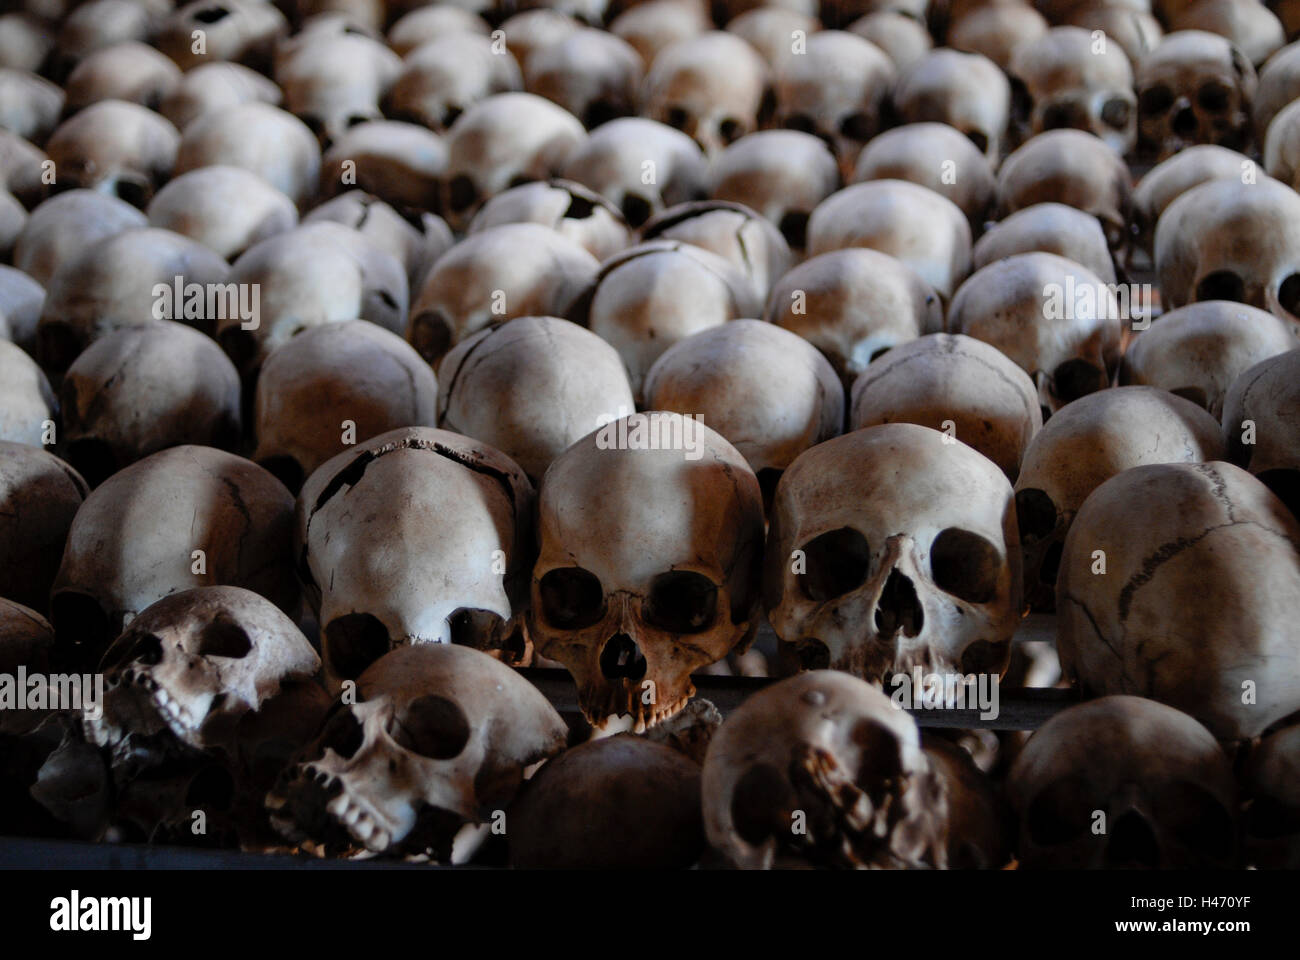 RWANDA Genocide memorial Ntarama , during the genocide in April 1994 about 5000 Tutsi people were killed by Hutu - Stock Image